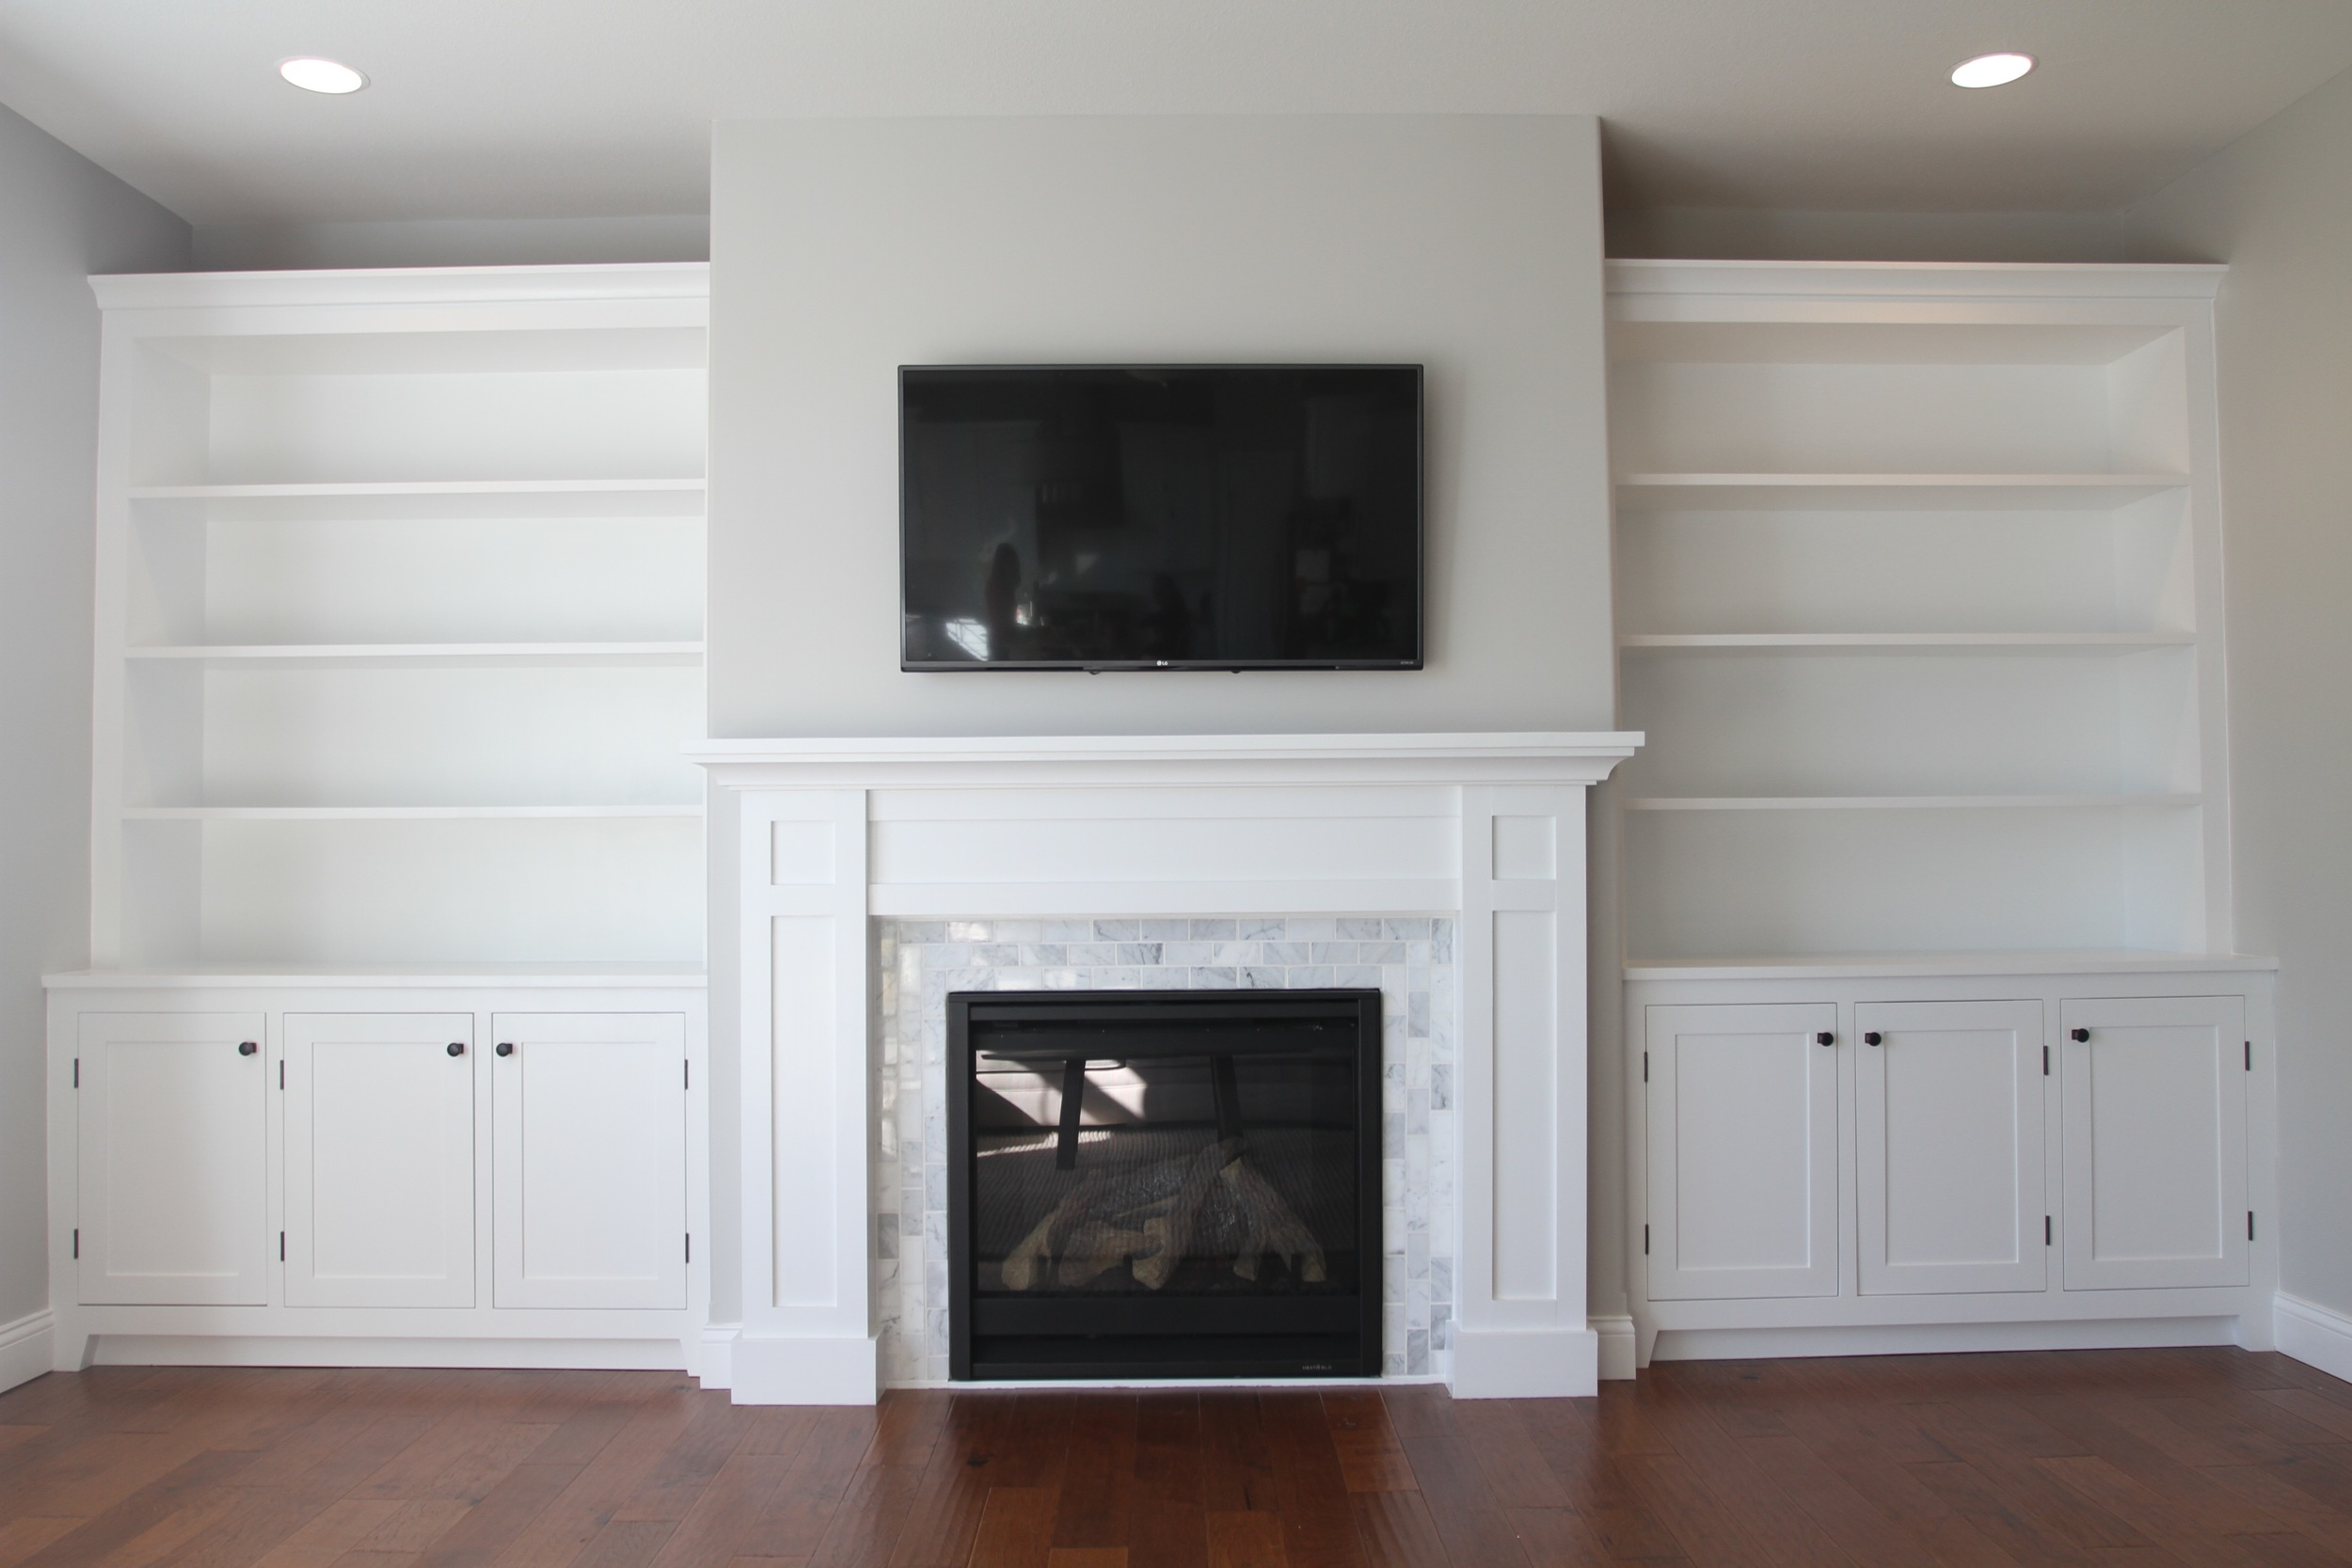 How To Build A Built-in The Cabinets